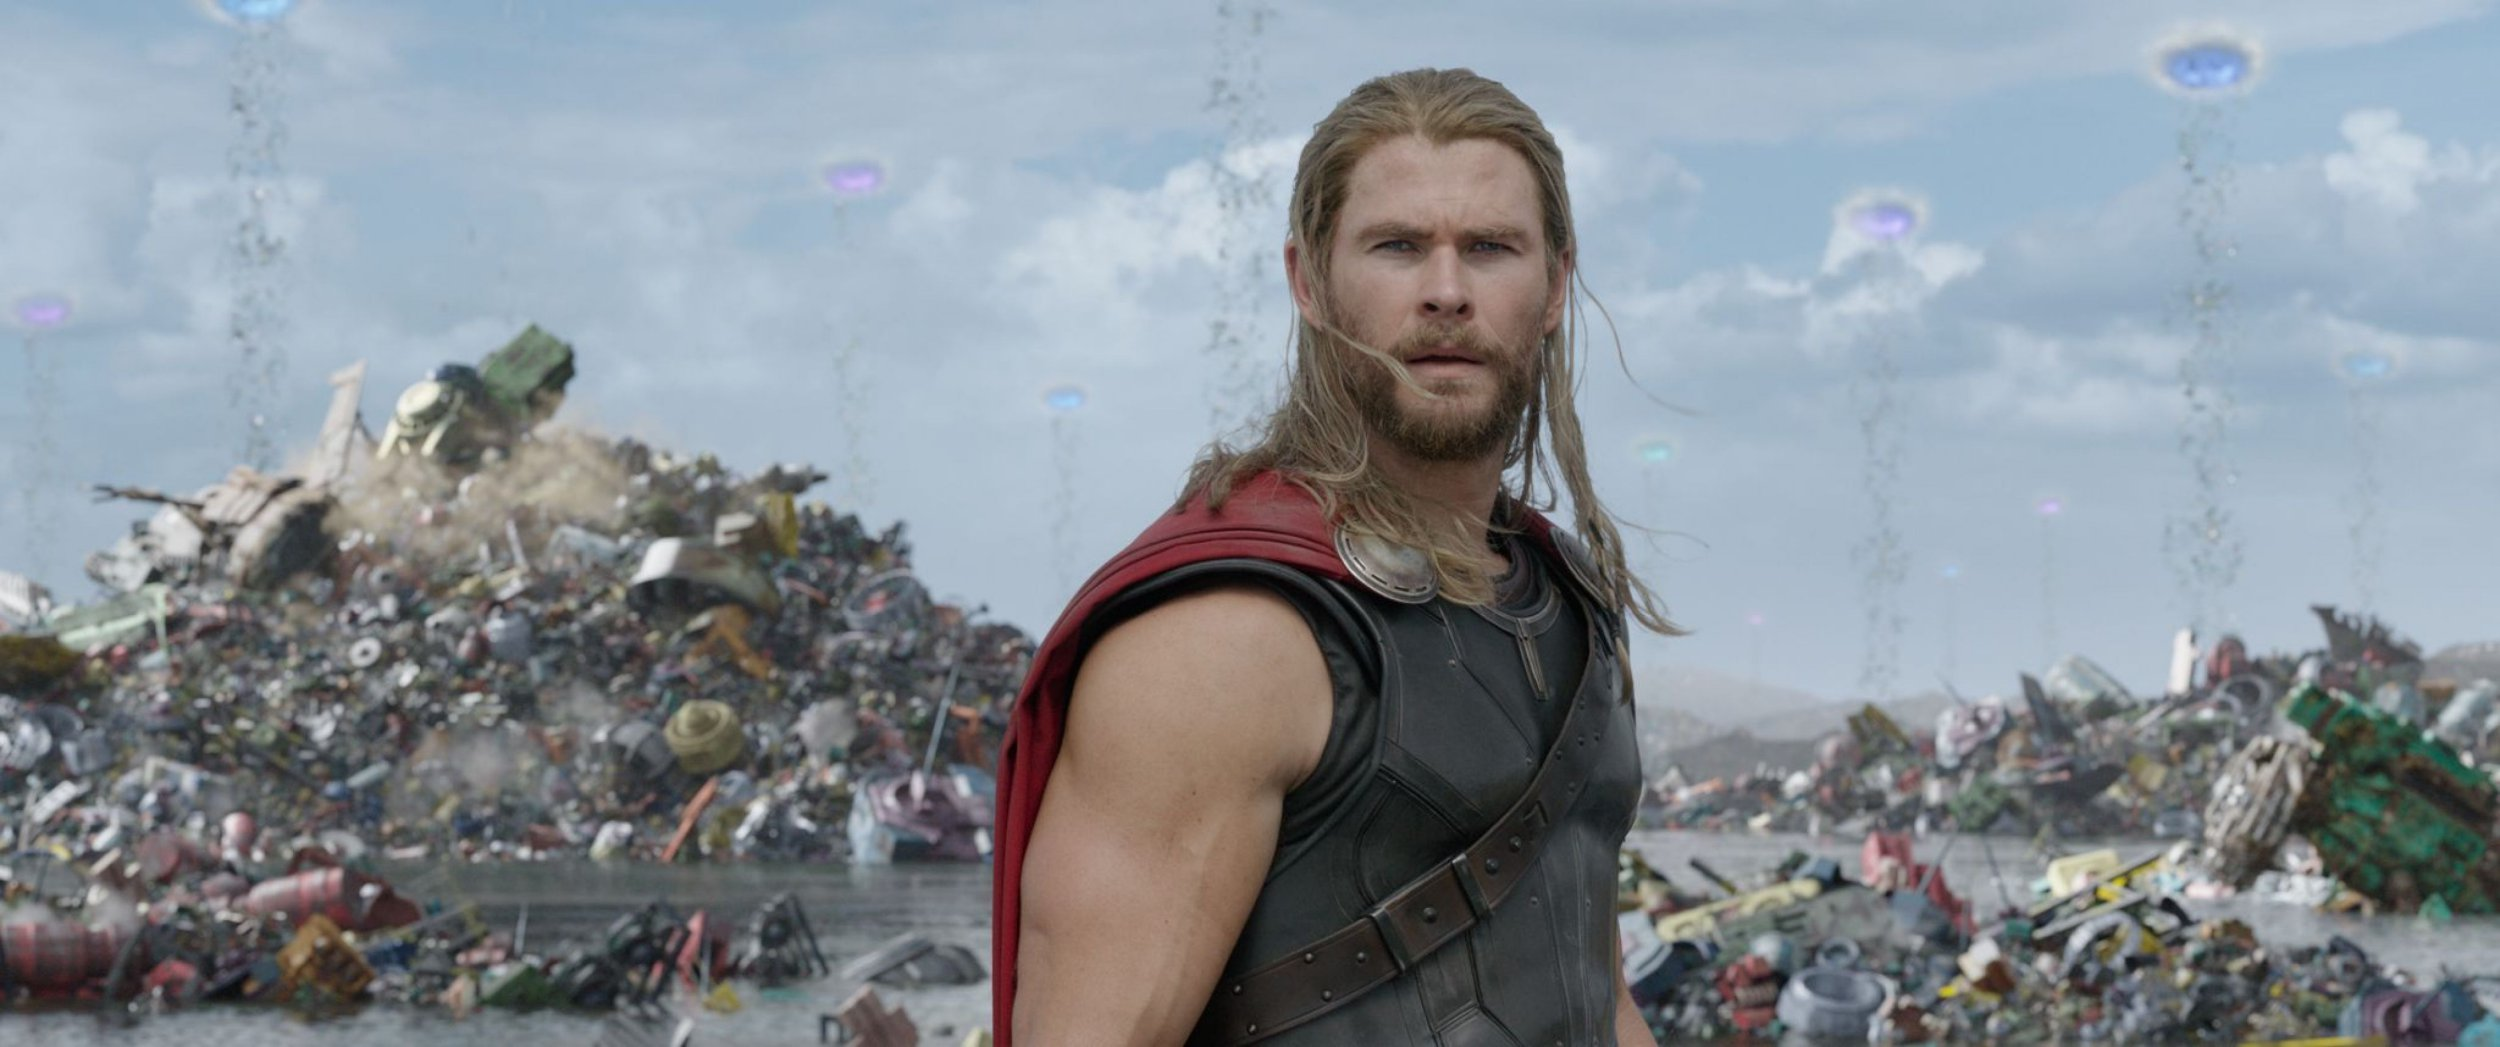 Avengers fan spots Thor Easter egg nearly 10 years later but we're just obsessed with Chris Hemsworth's eyebrows